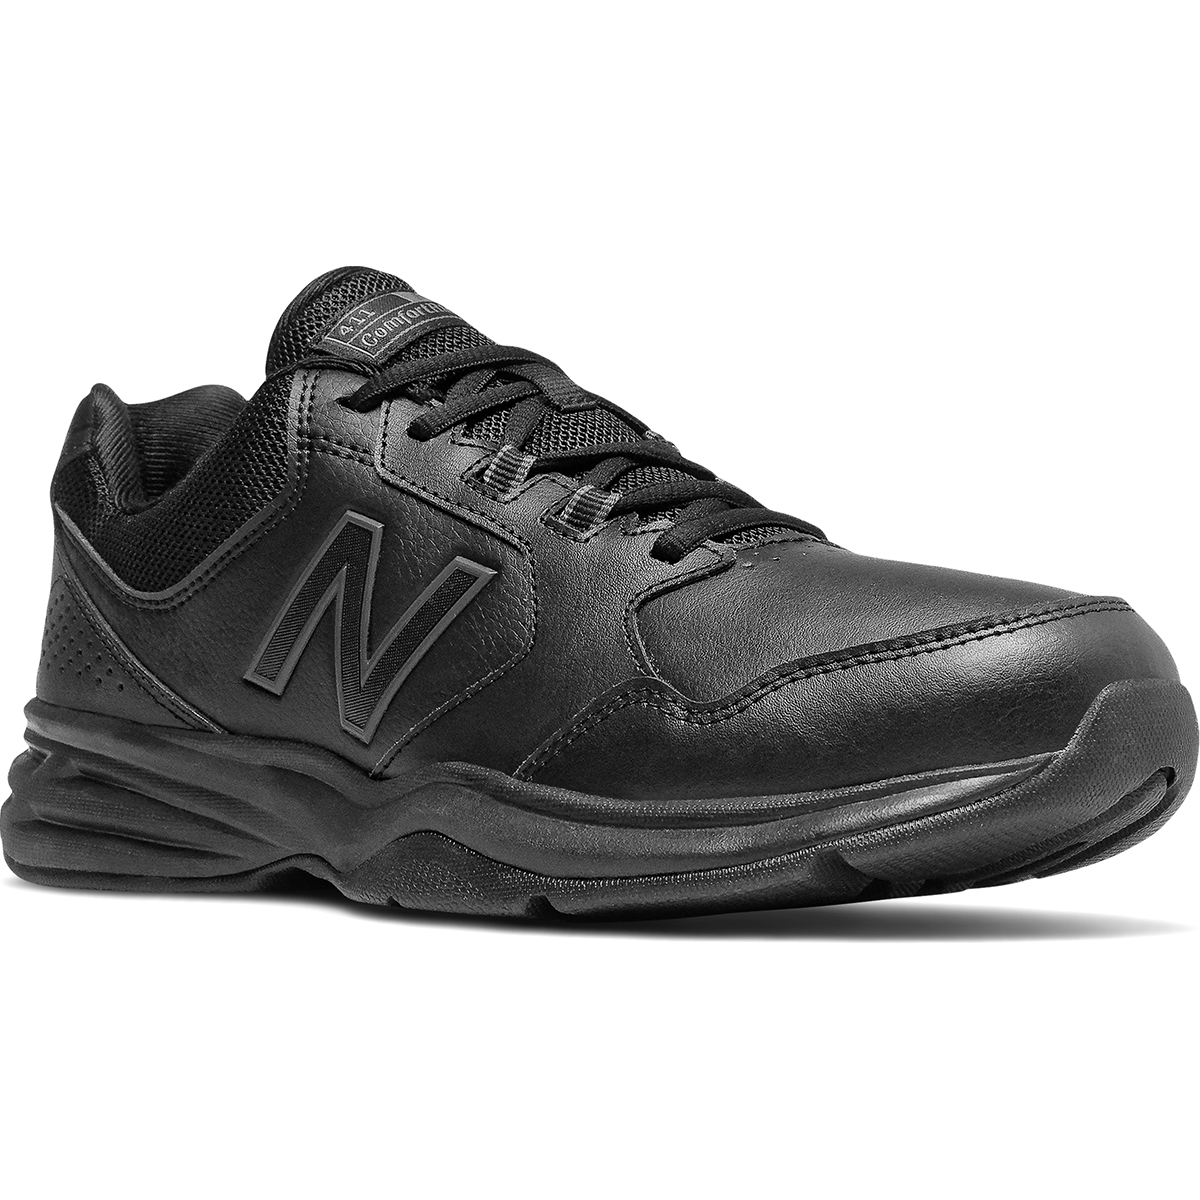 New Balance Men's 411 Walking Shoes - Black, 11.5